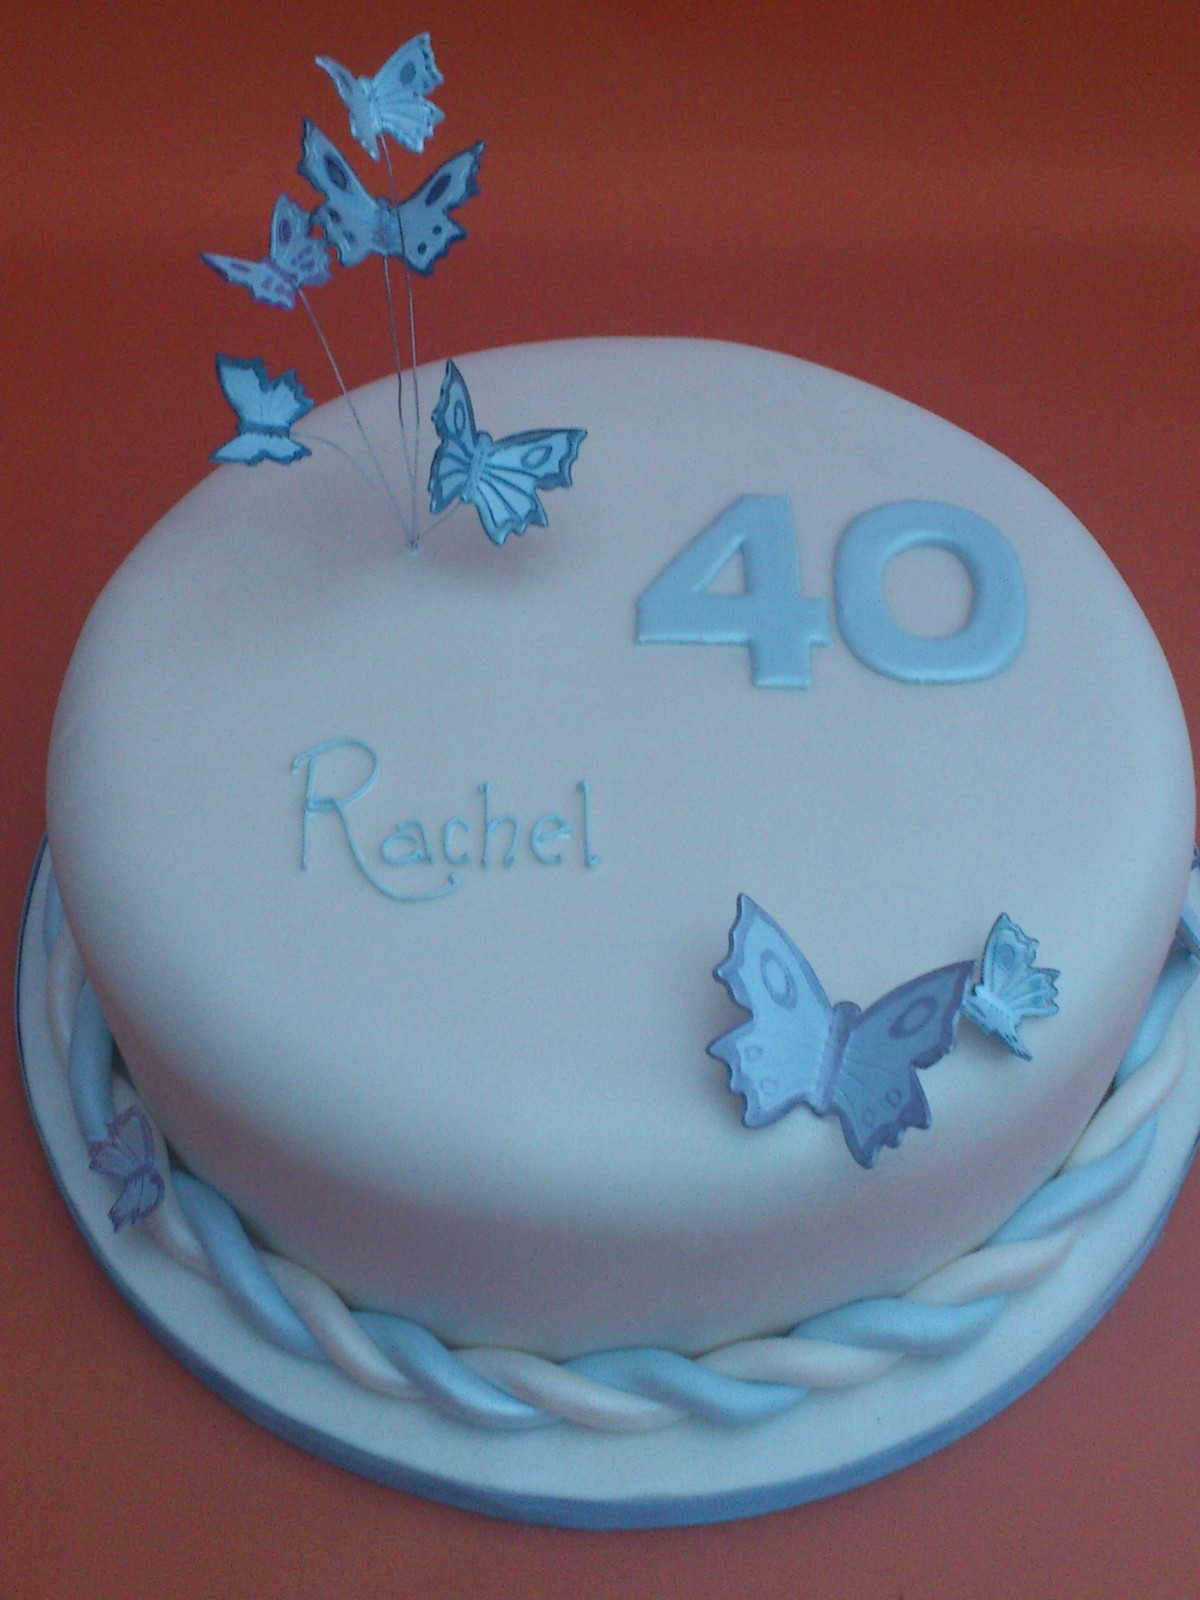 40th Birthday Cake With Blue Butterflies Susie S Cakes